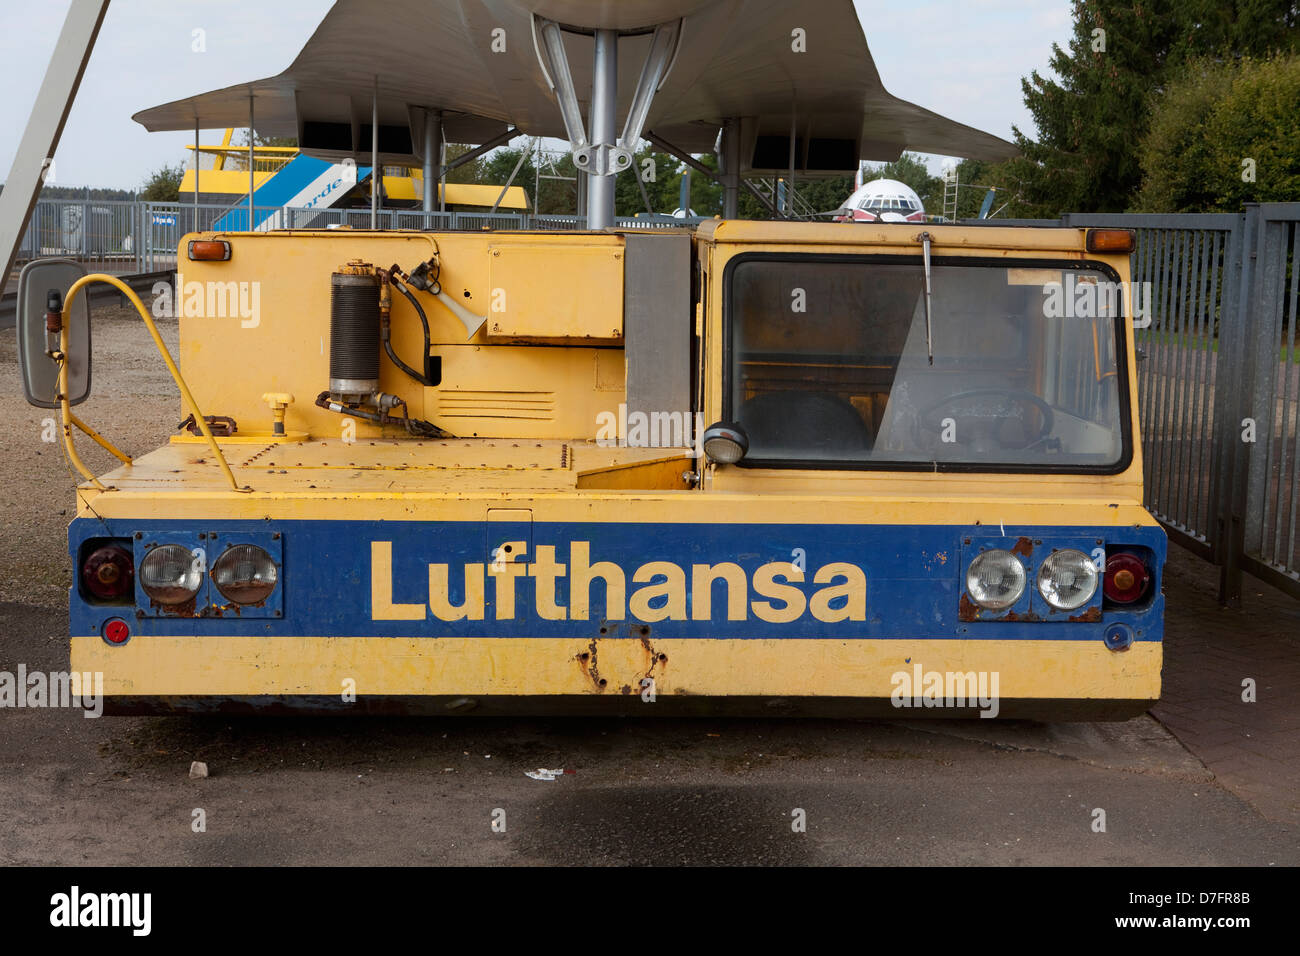 Old Lufthansa aircraft tractor or pusher, - Stock Image